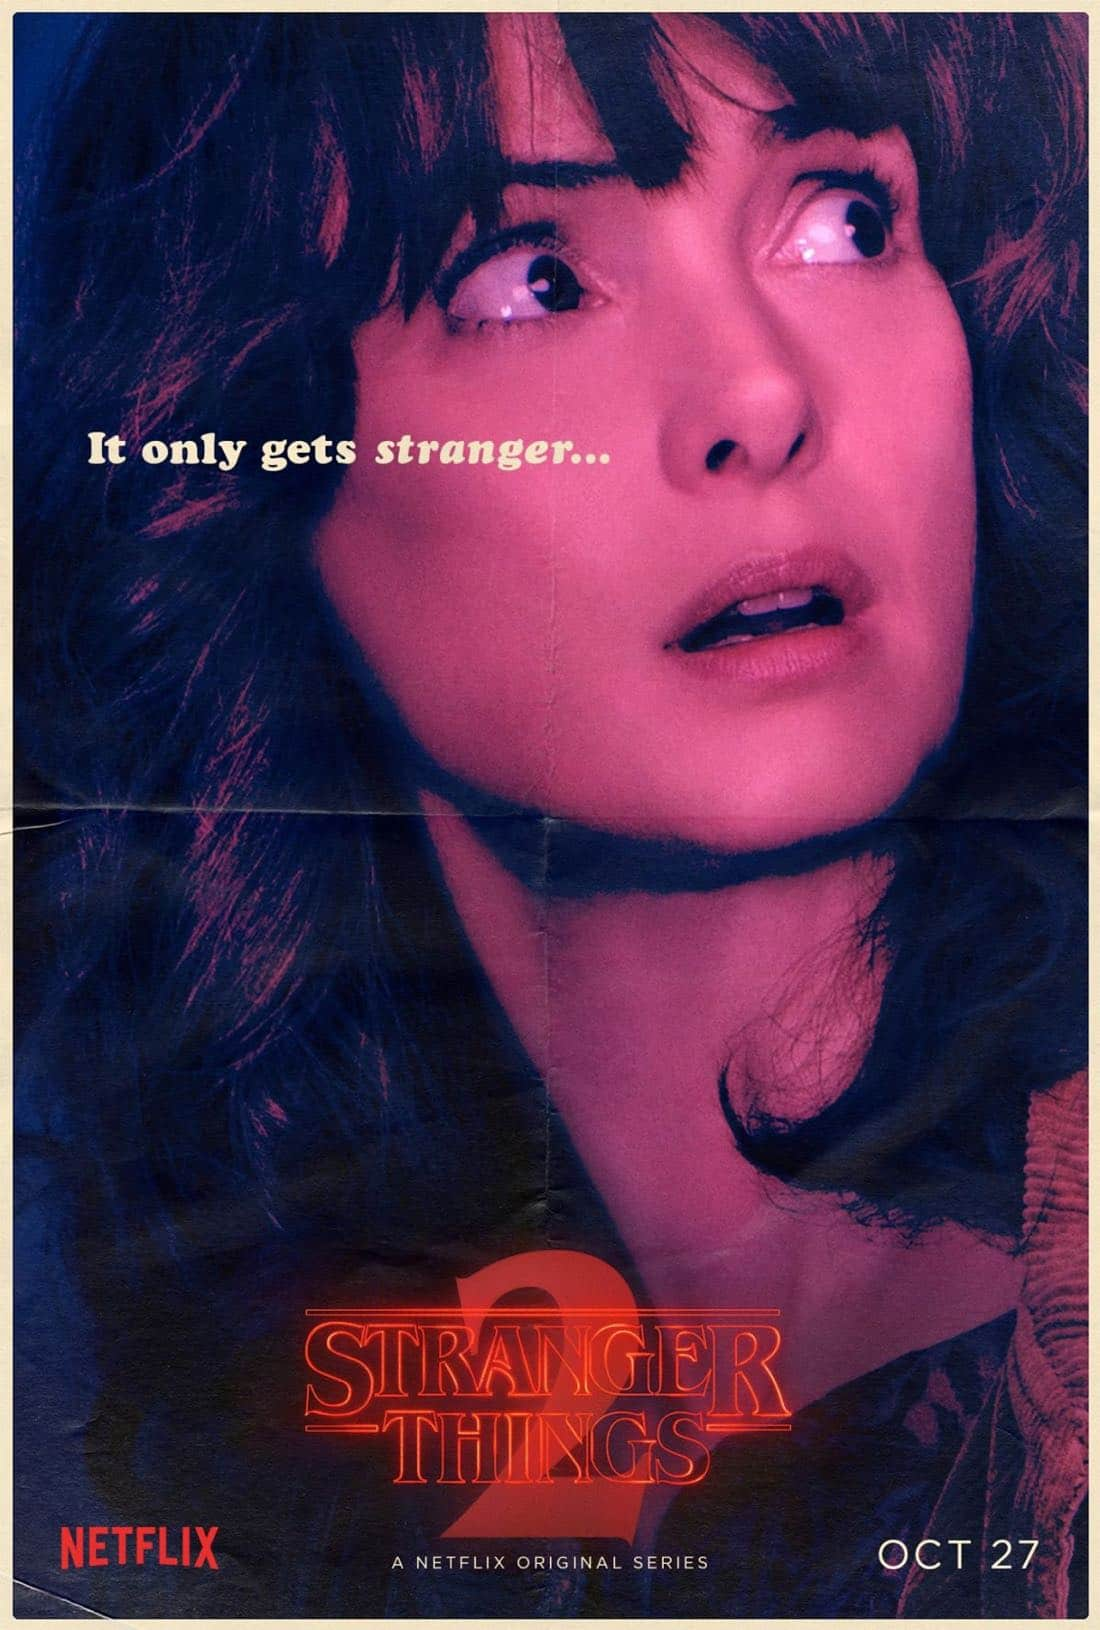 Stranger Things Character Poster - Winona Ryder - Joyce